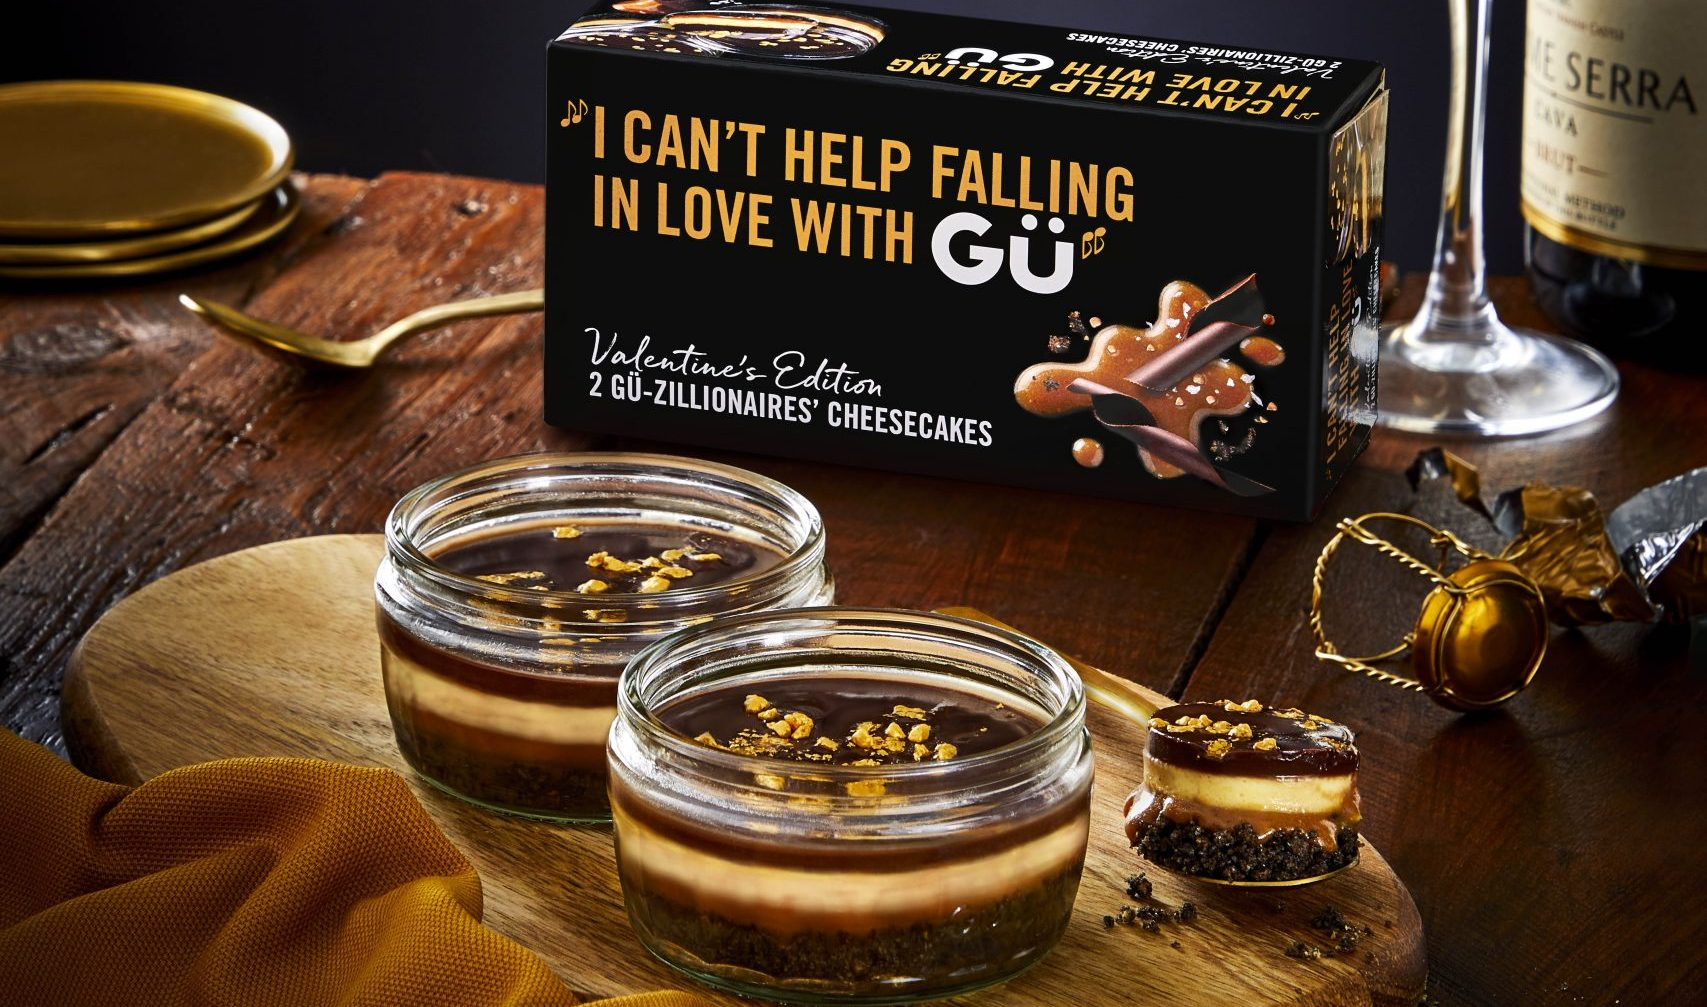 Shoppers 'salivate' over Gü's limited-edition chocolate, salted caramel and lemon desserts for Valentine's Day